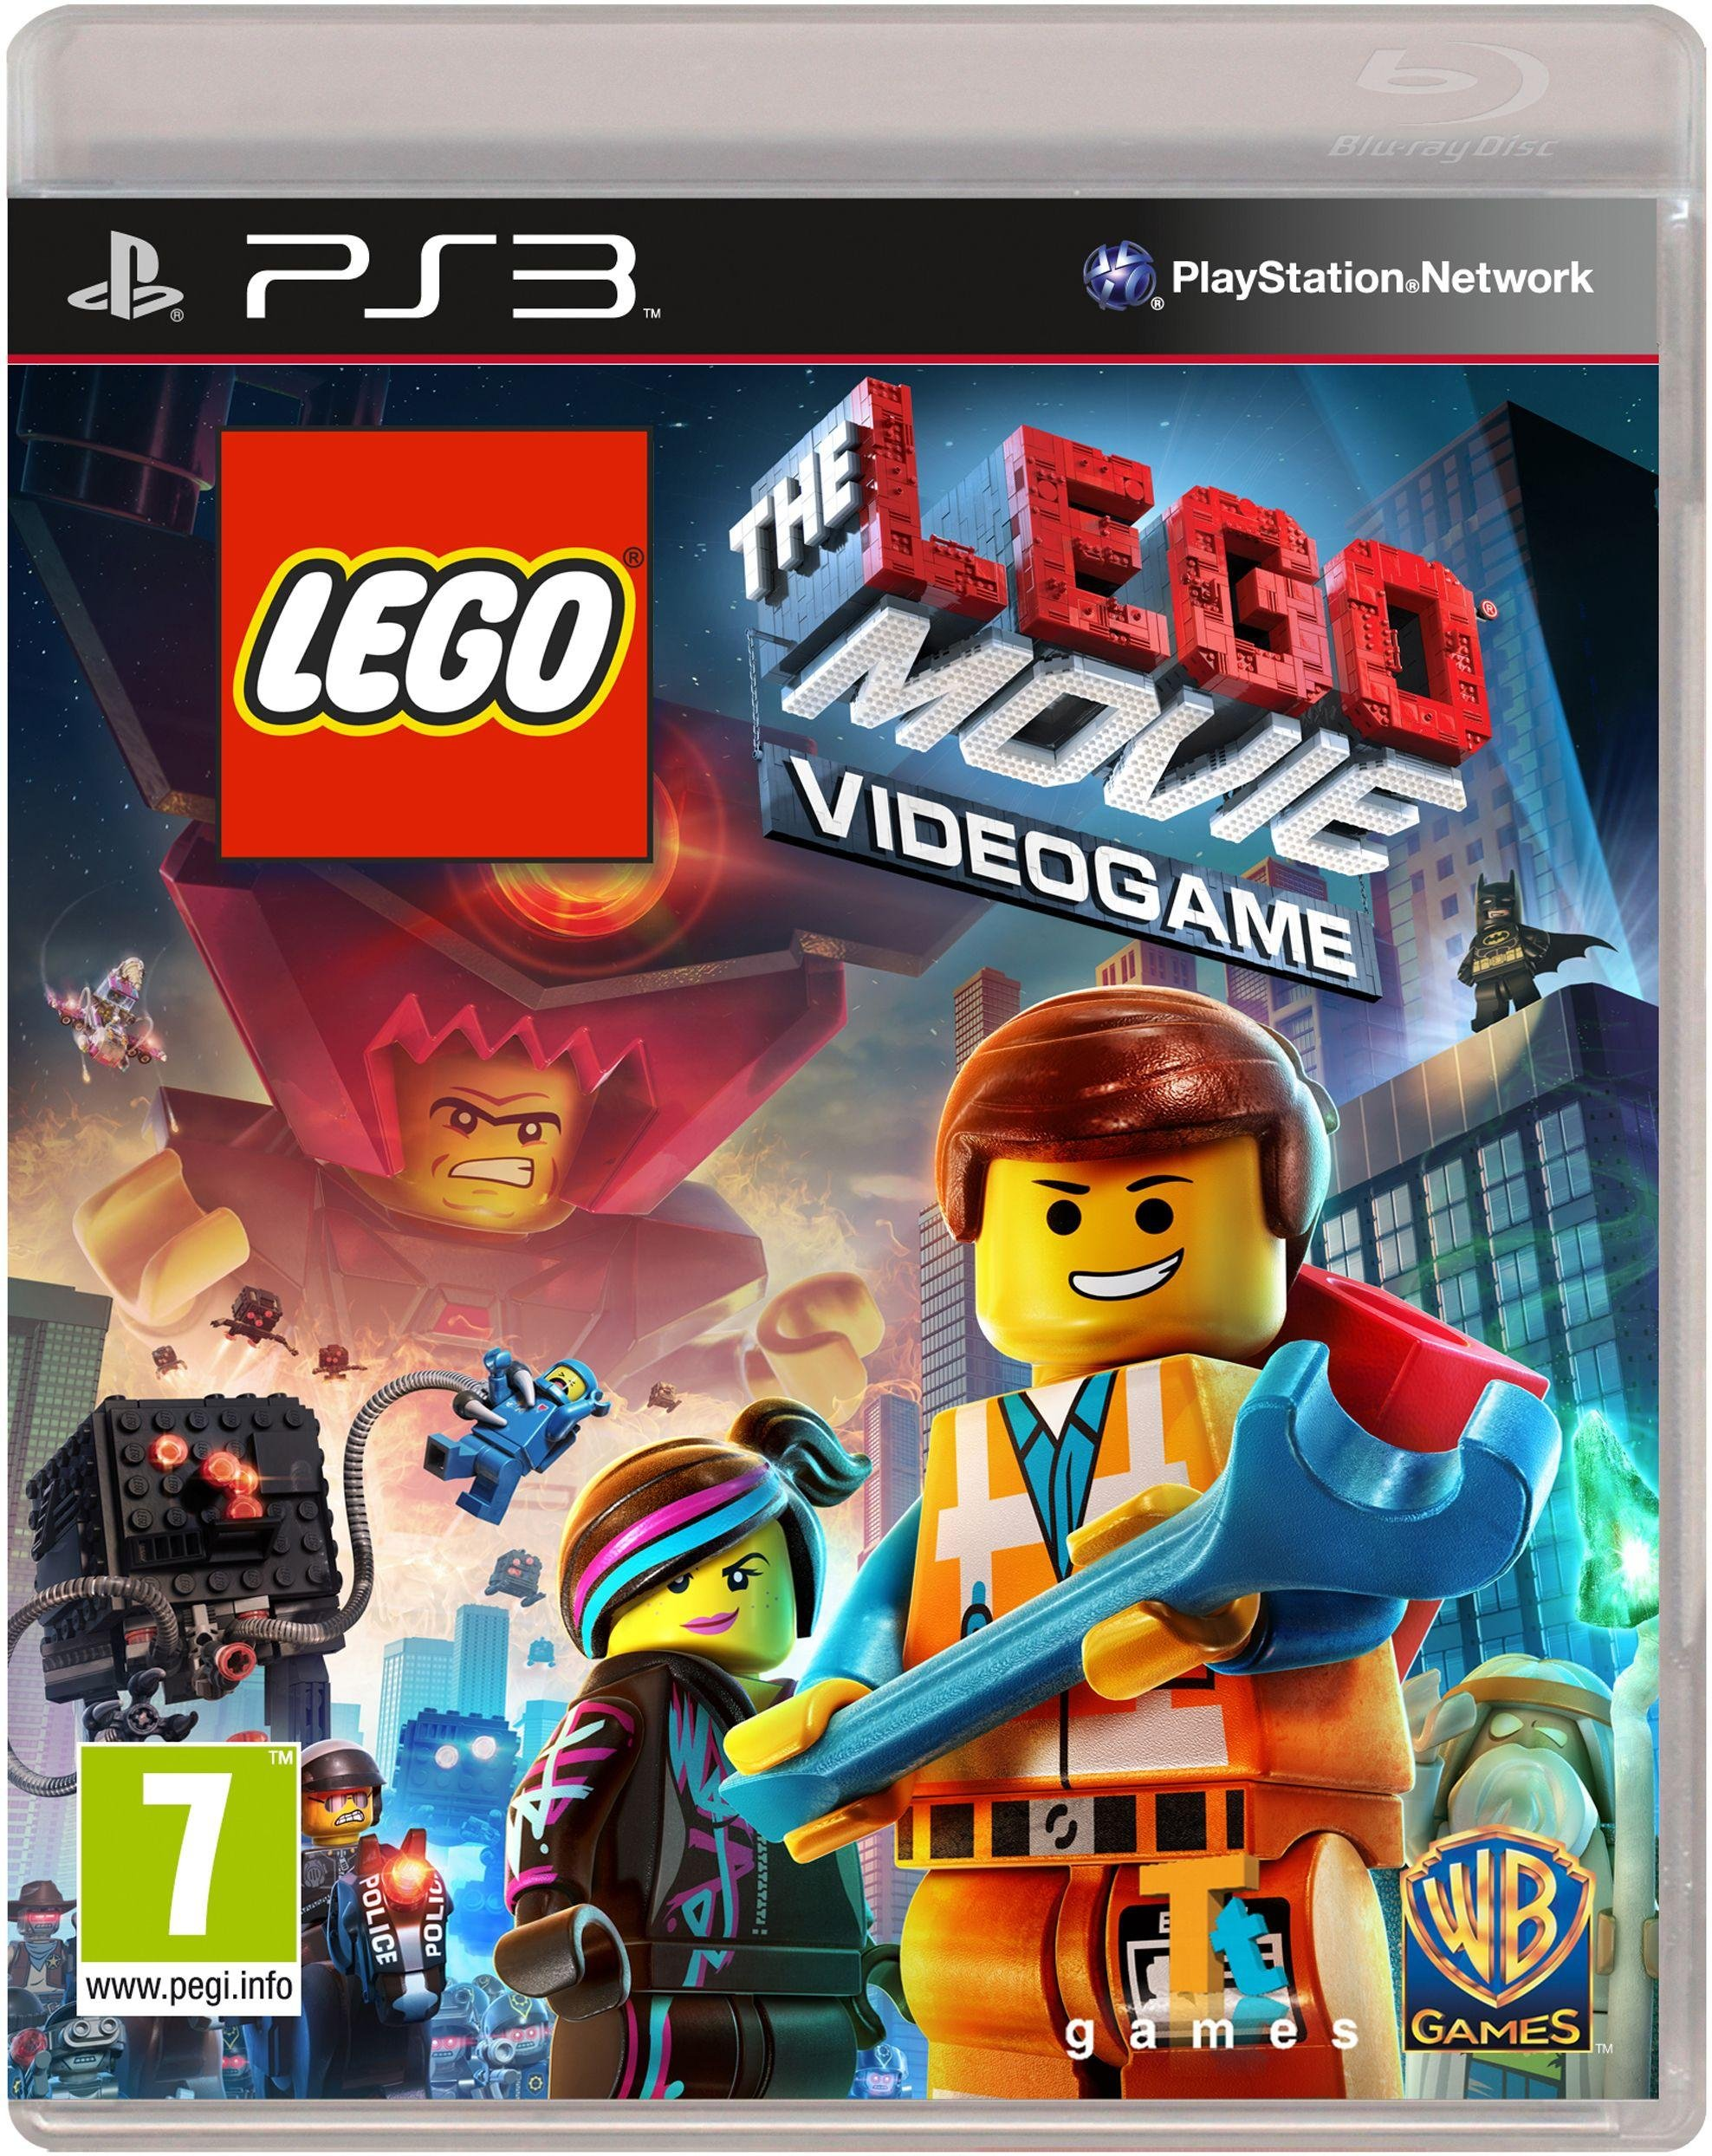 Image of LEGO Movie: The Videogame PS3 Game.